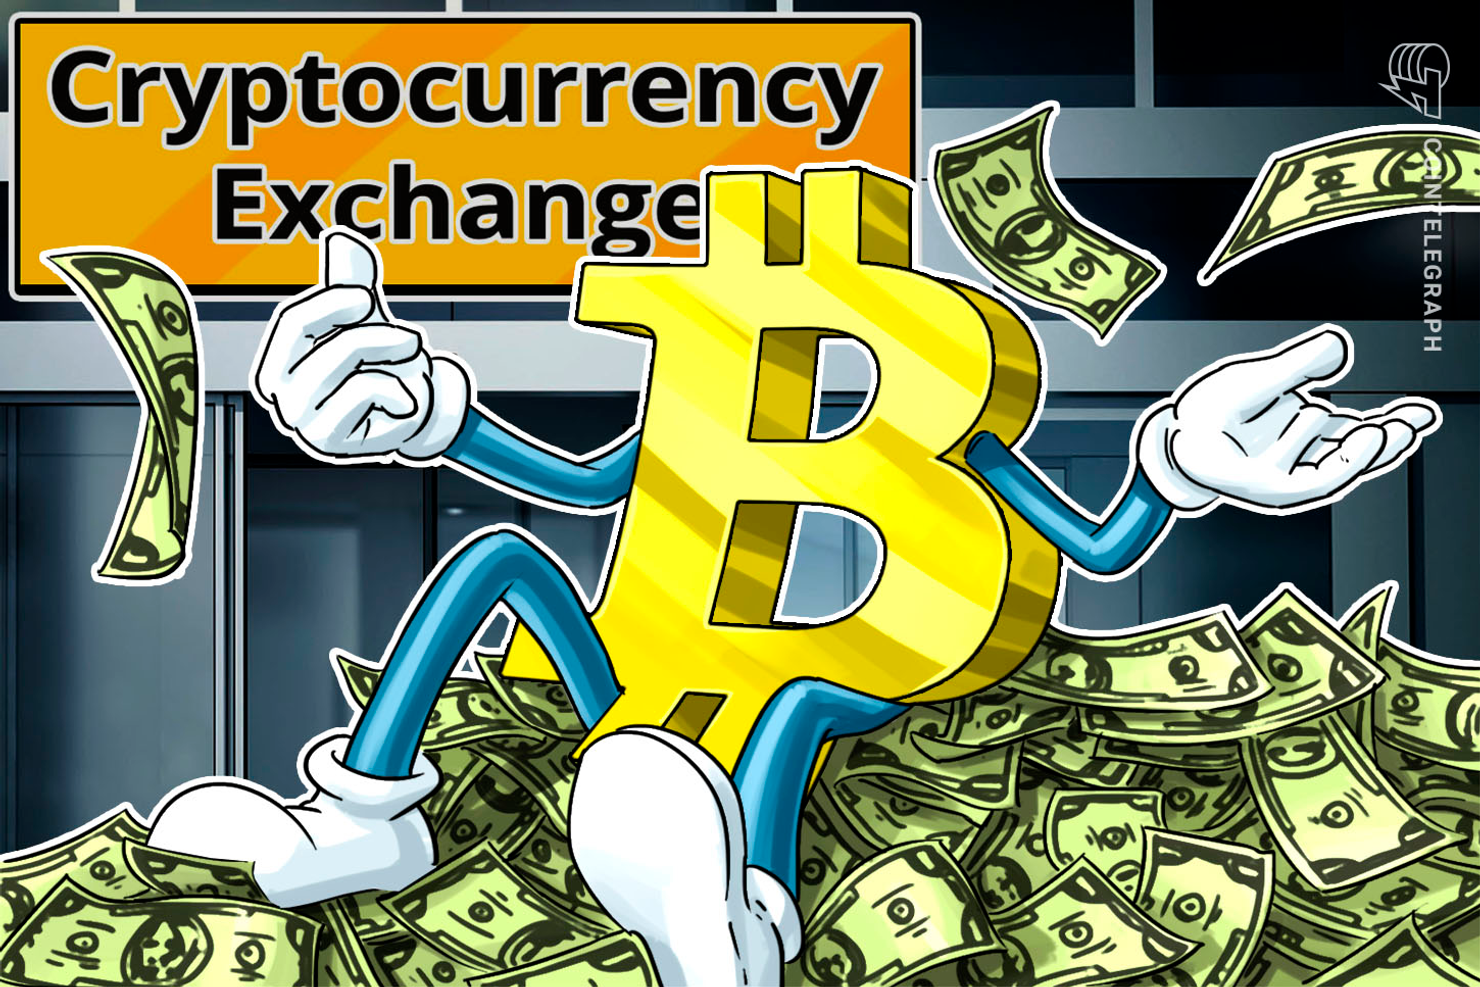 Nearly $10 Billion in BTC Is Held in Wallets of 8 Crypto Exchanges